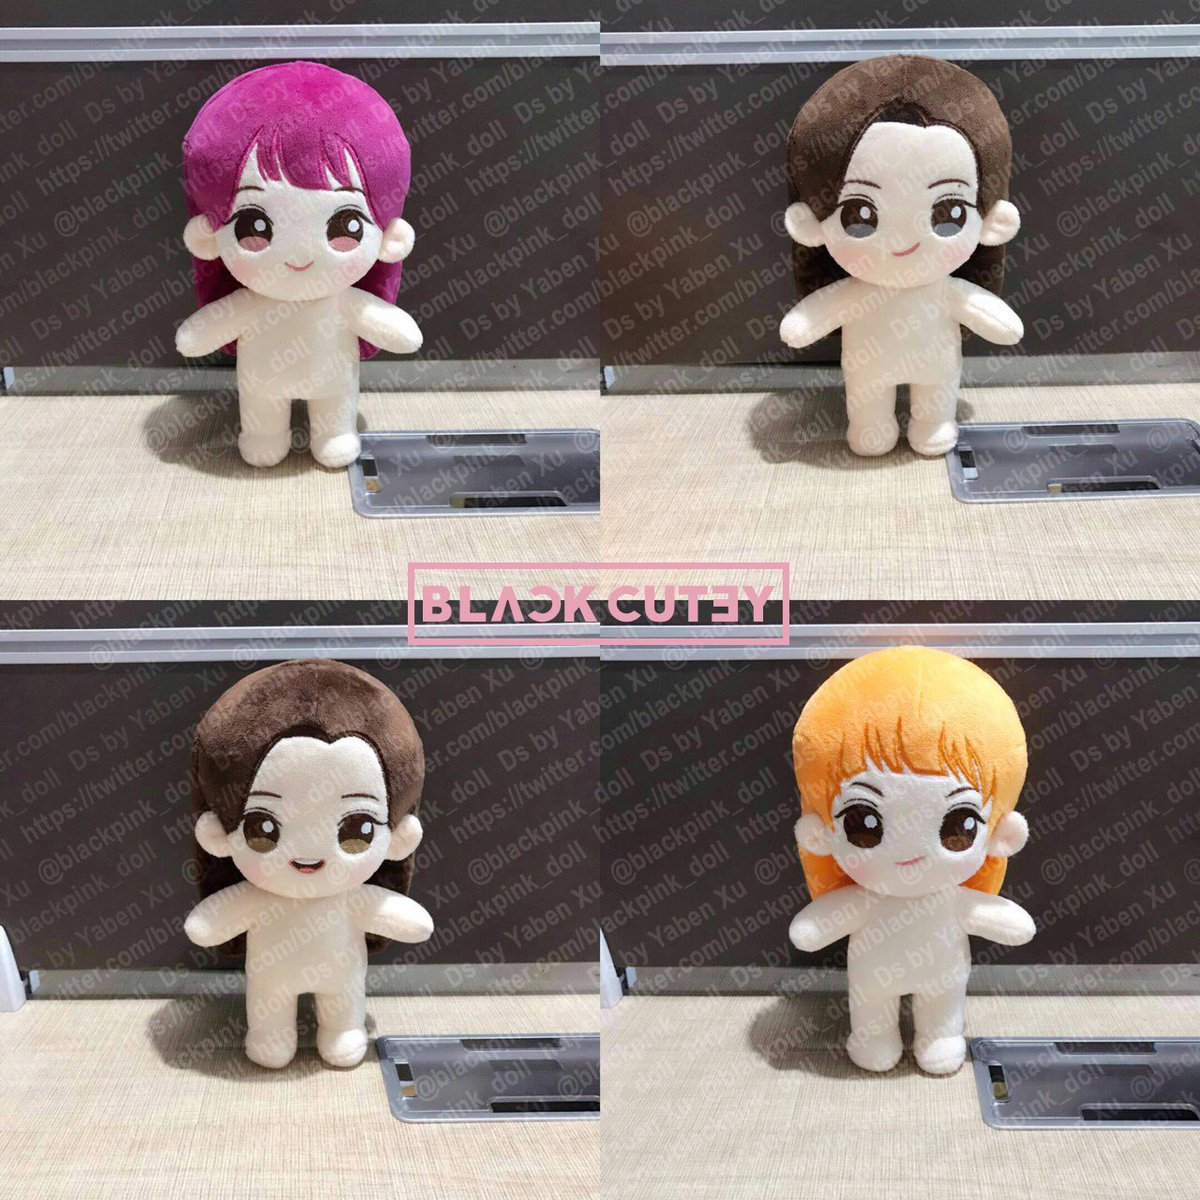 Black Cutey Blackpink Doll Twitter Profile Twipu Plz5 Smpale Second Sample Is Completed We Will Start Making The Clothes As Soon Possible